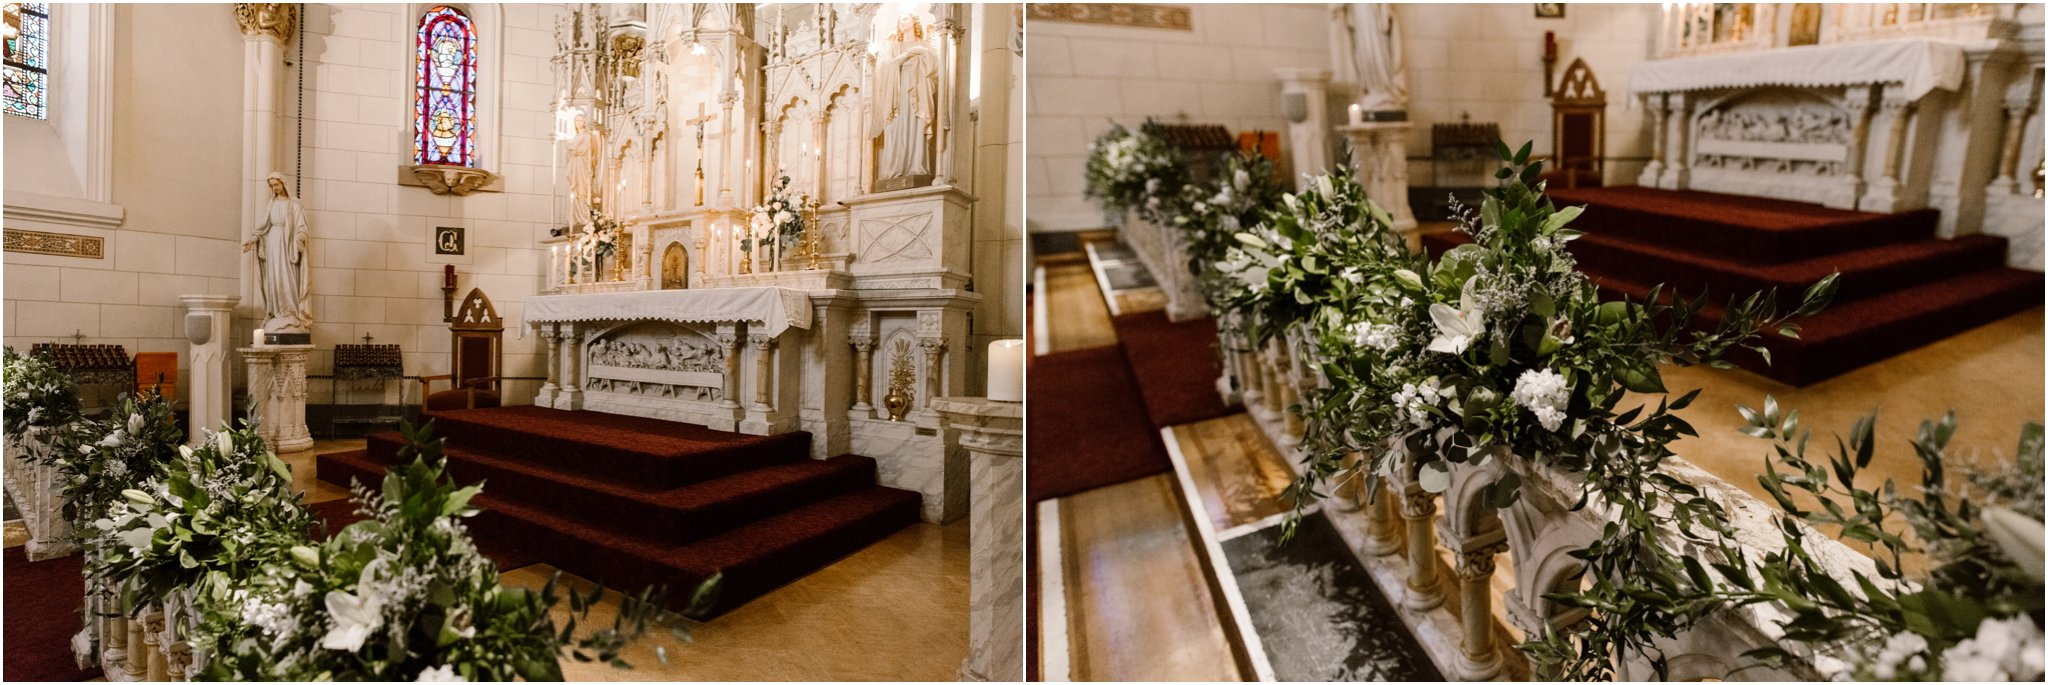 0277Loretto Chapel and Inn and Spa at Loretto Weddings Blue Rose Photography Studios